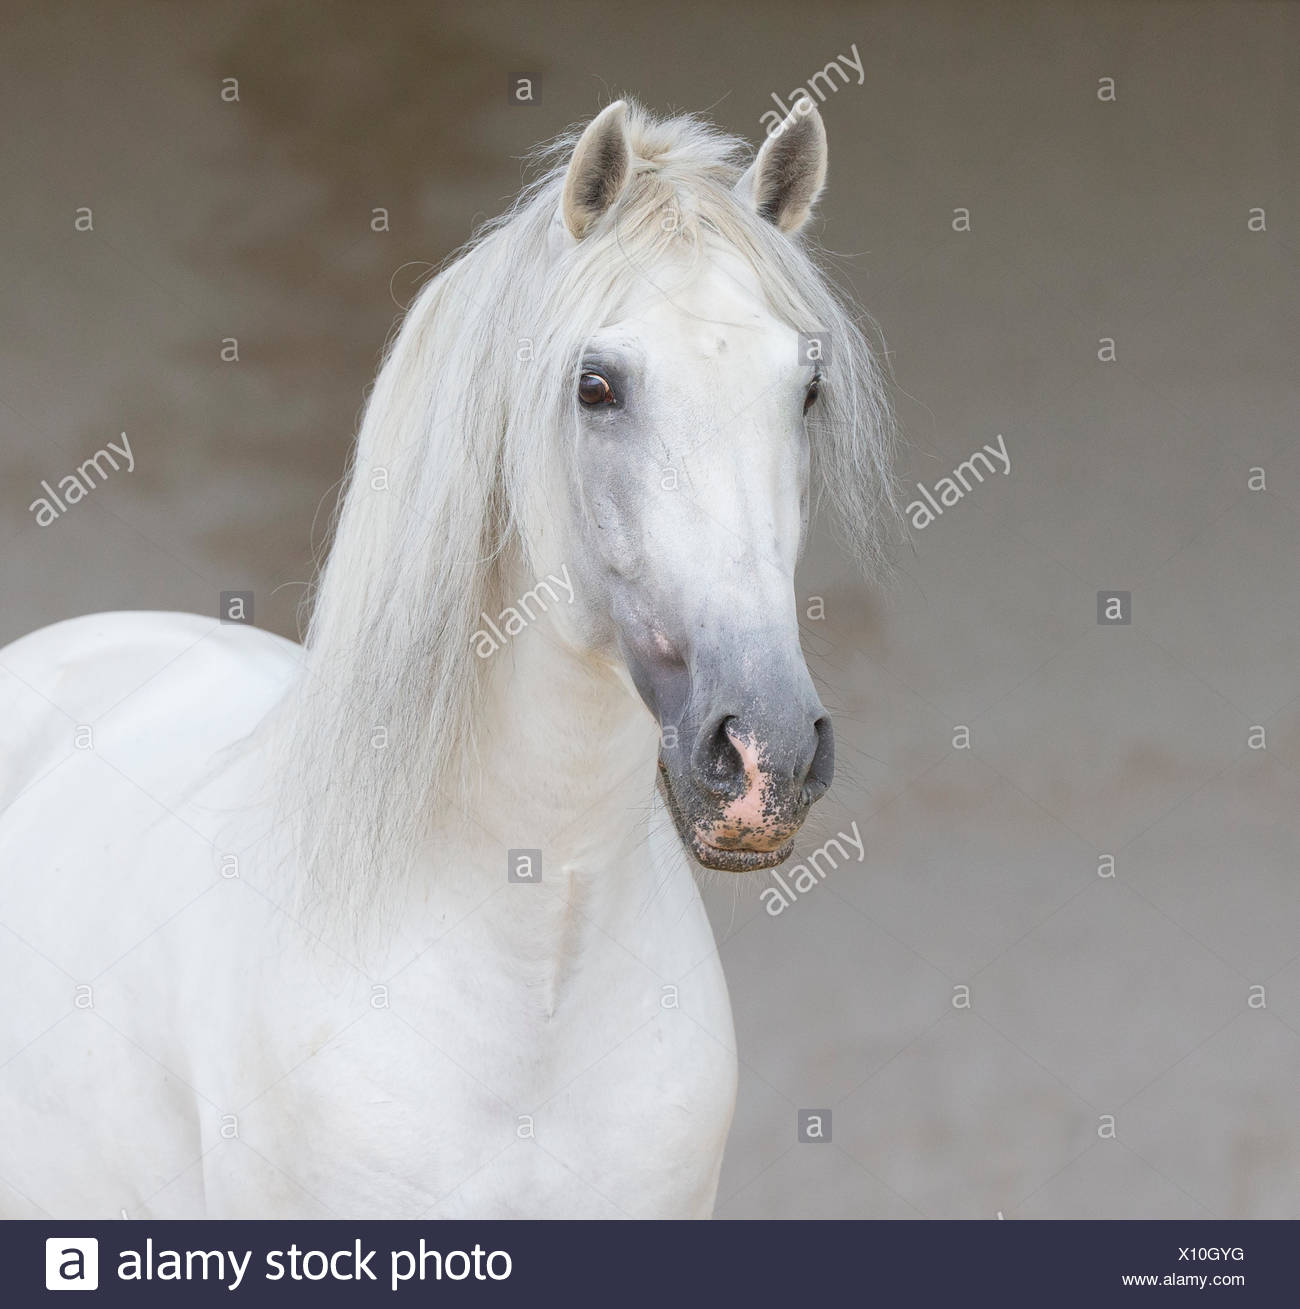 Head portrait of grey Andalusian stallion standing quietly in arena, Northern France, Europe. - Stock Image